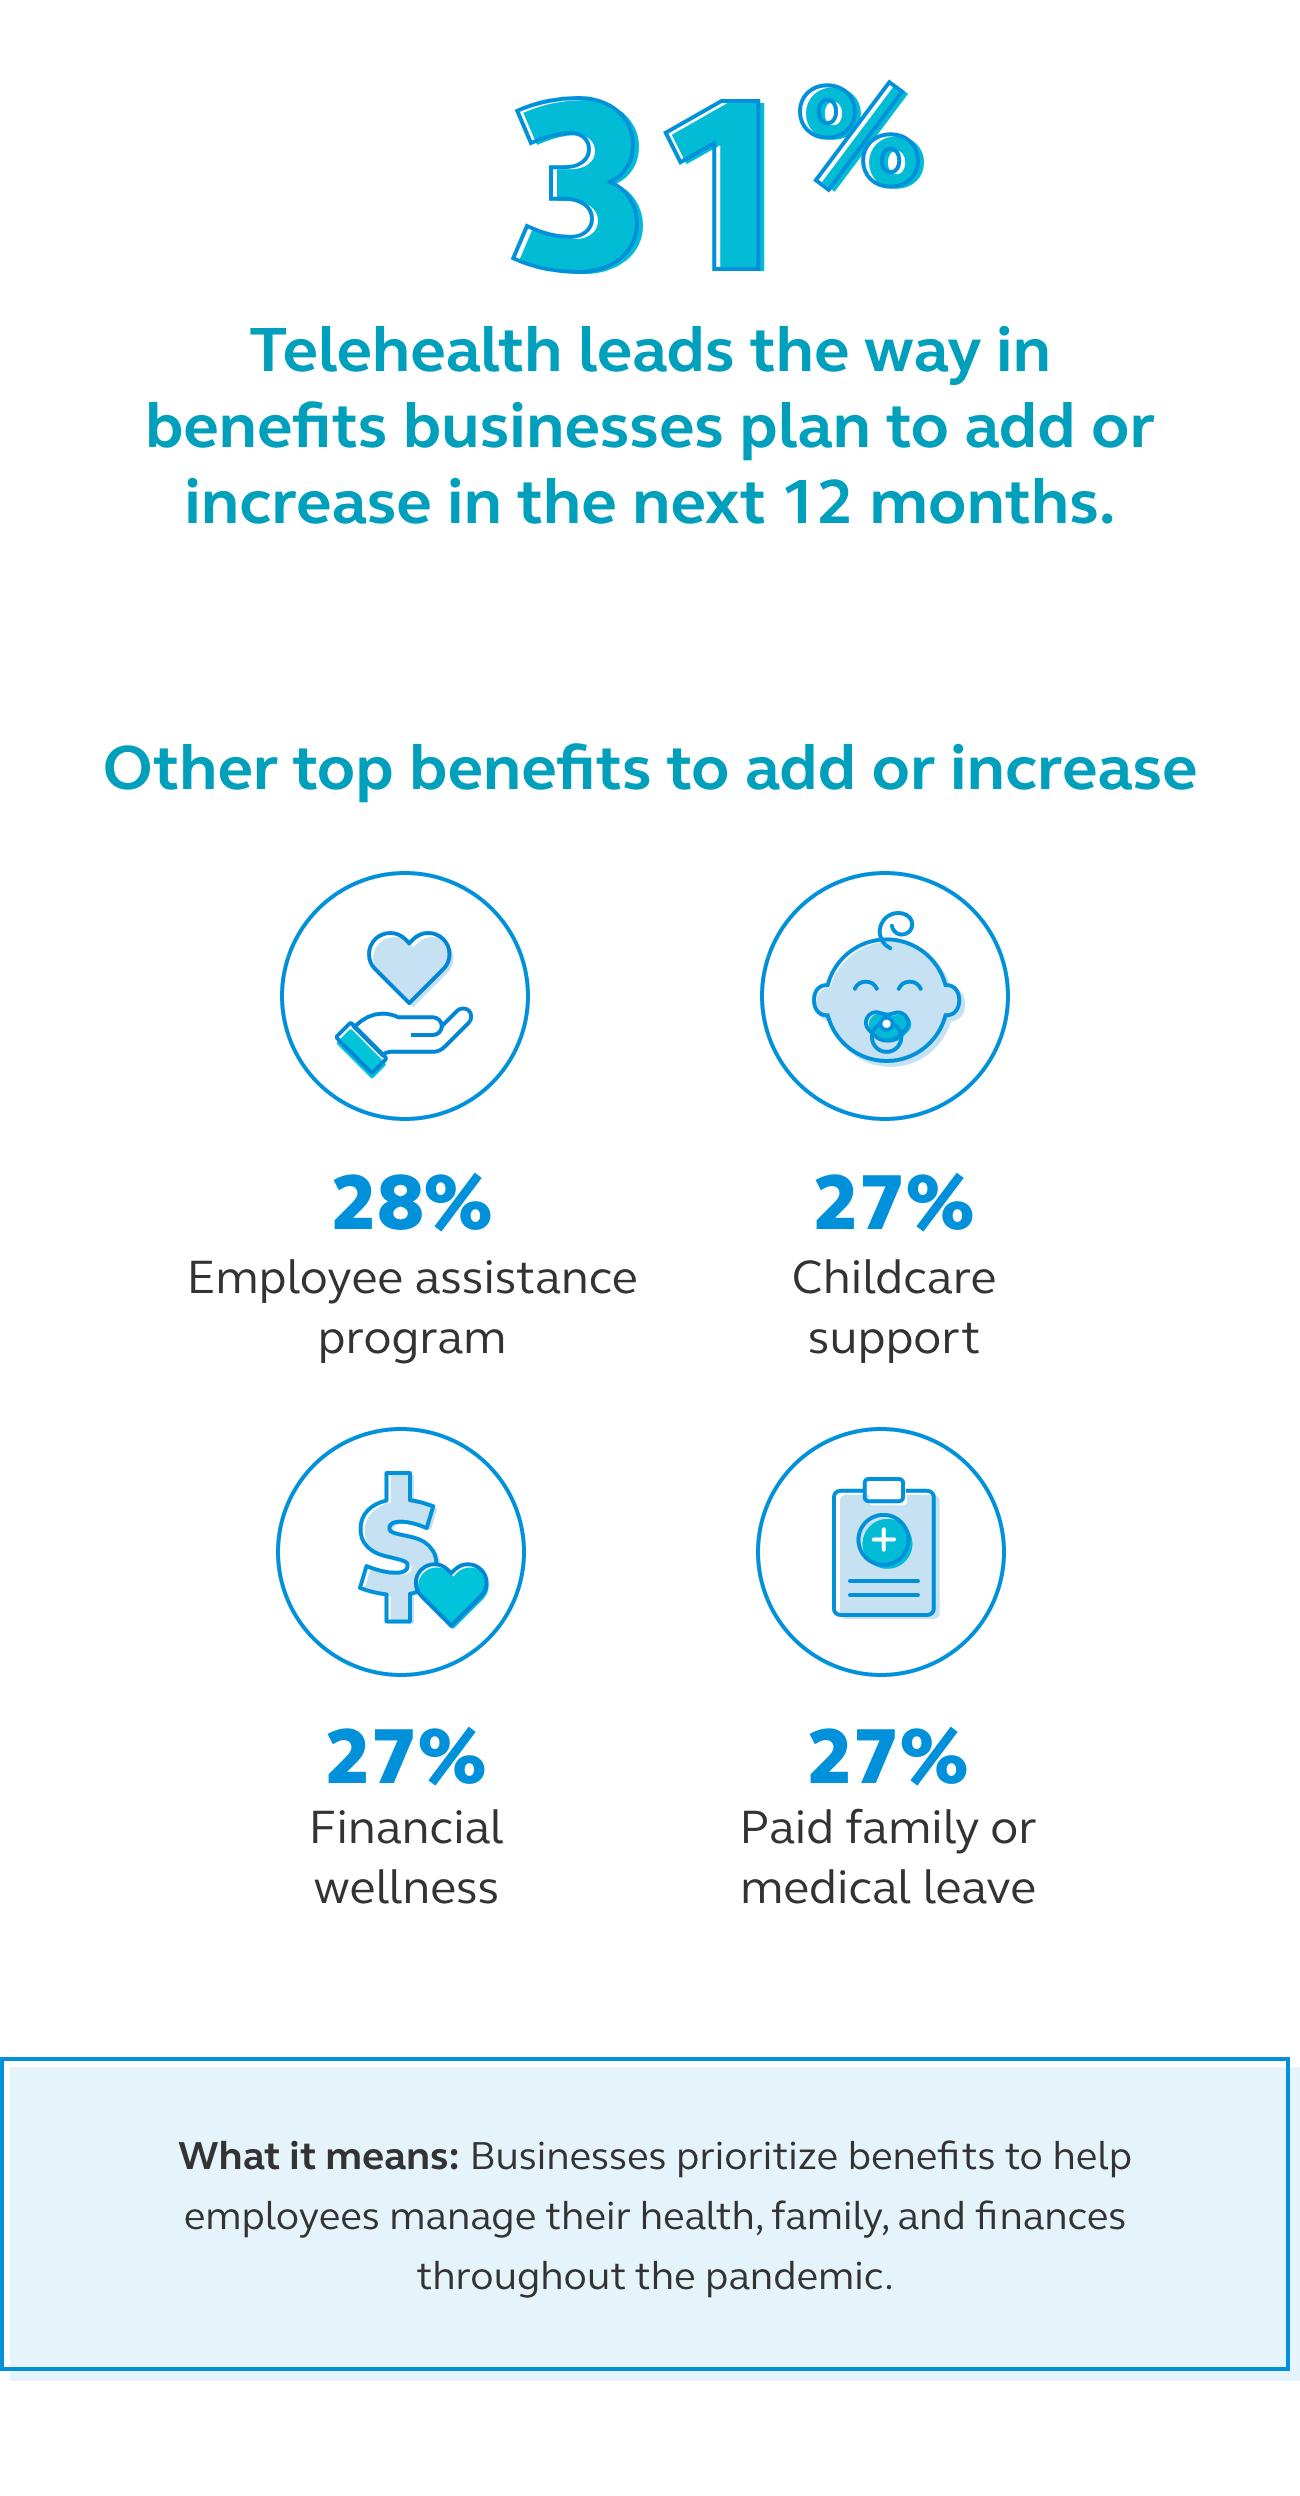 Graphic showing that 31% of businesses plan to add or increase telehealth benefits in the next 12 months.